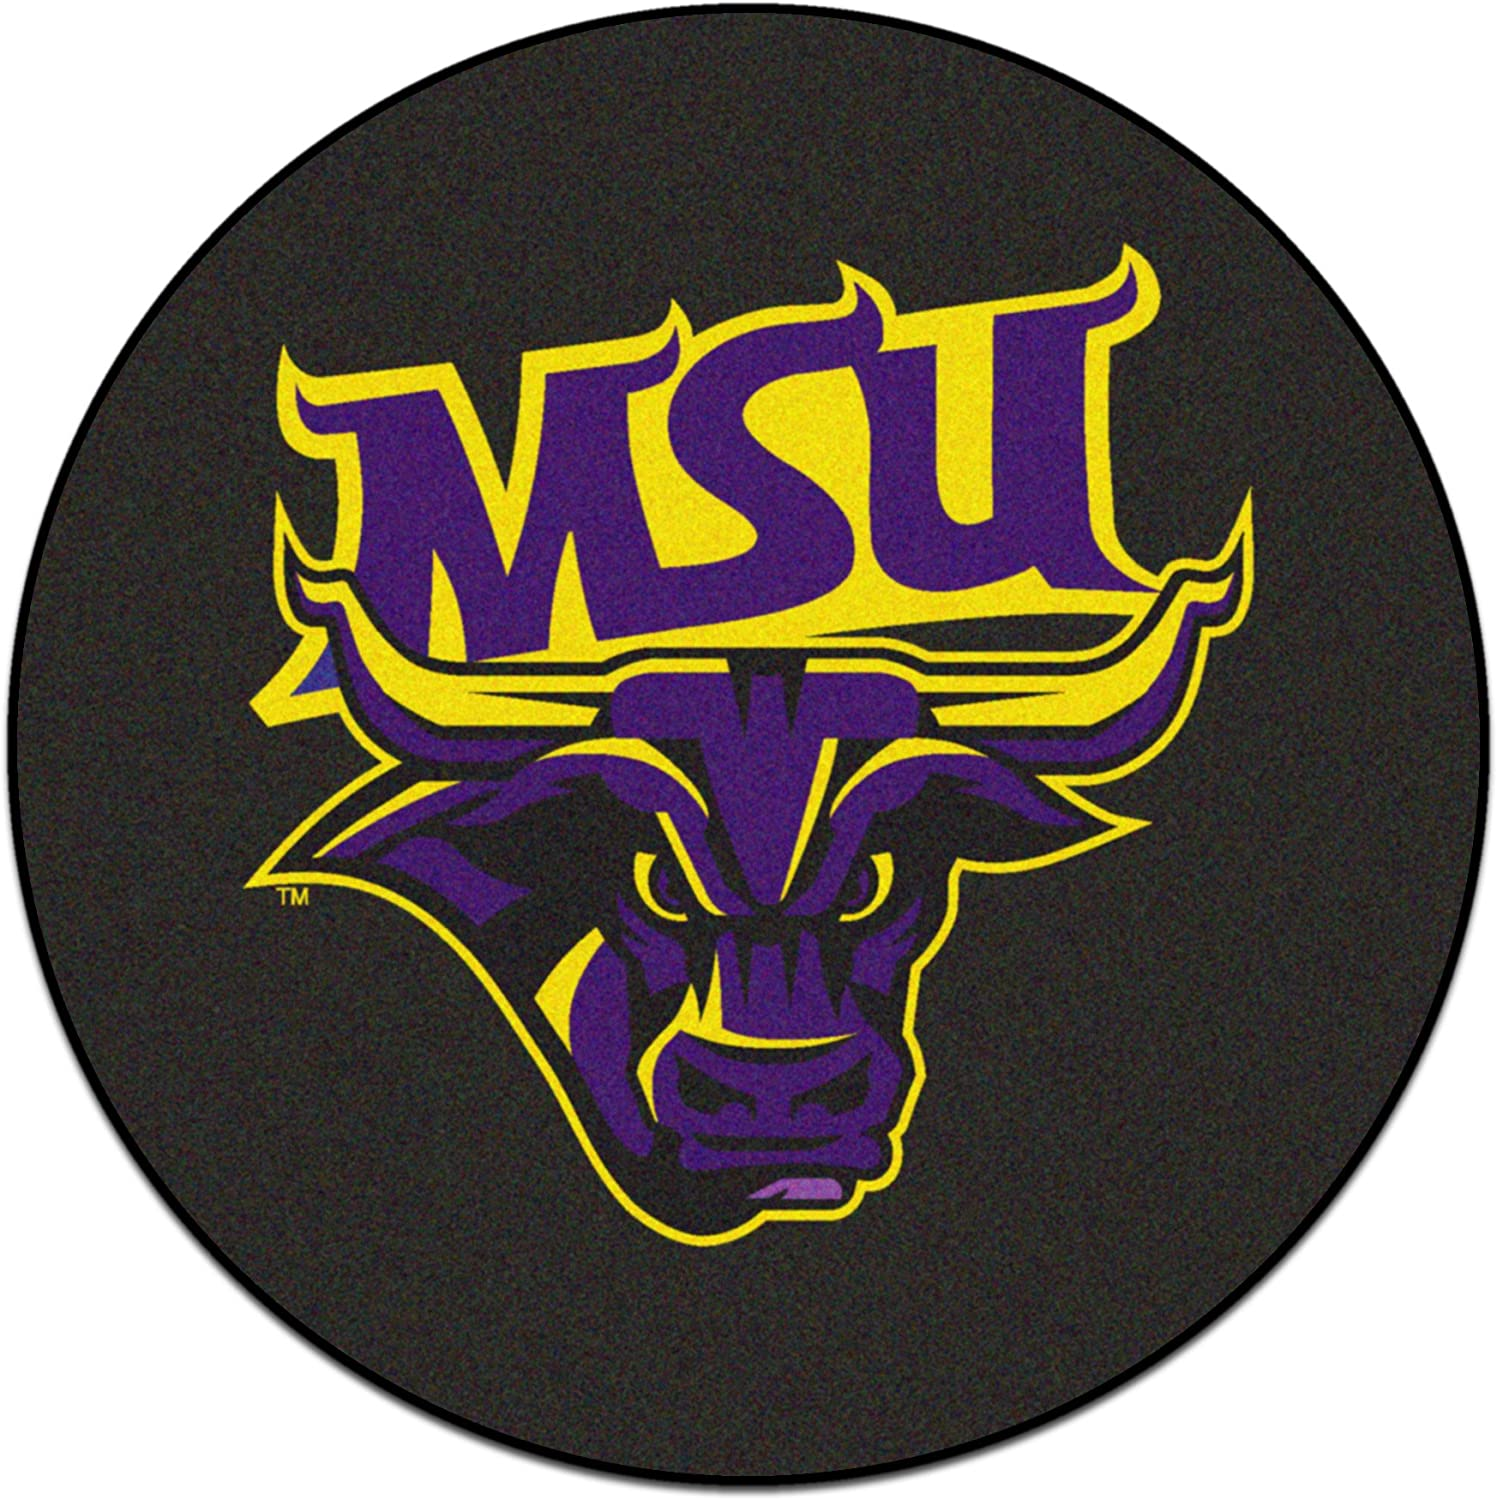 FanMats 19529-Fanmats Team color One Size MSU-Mankato Puck Mat 27  Diameter